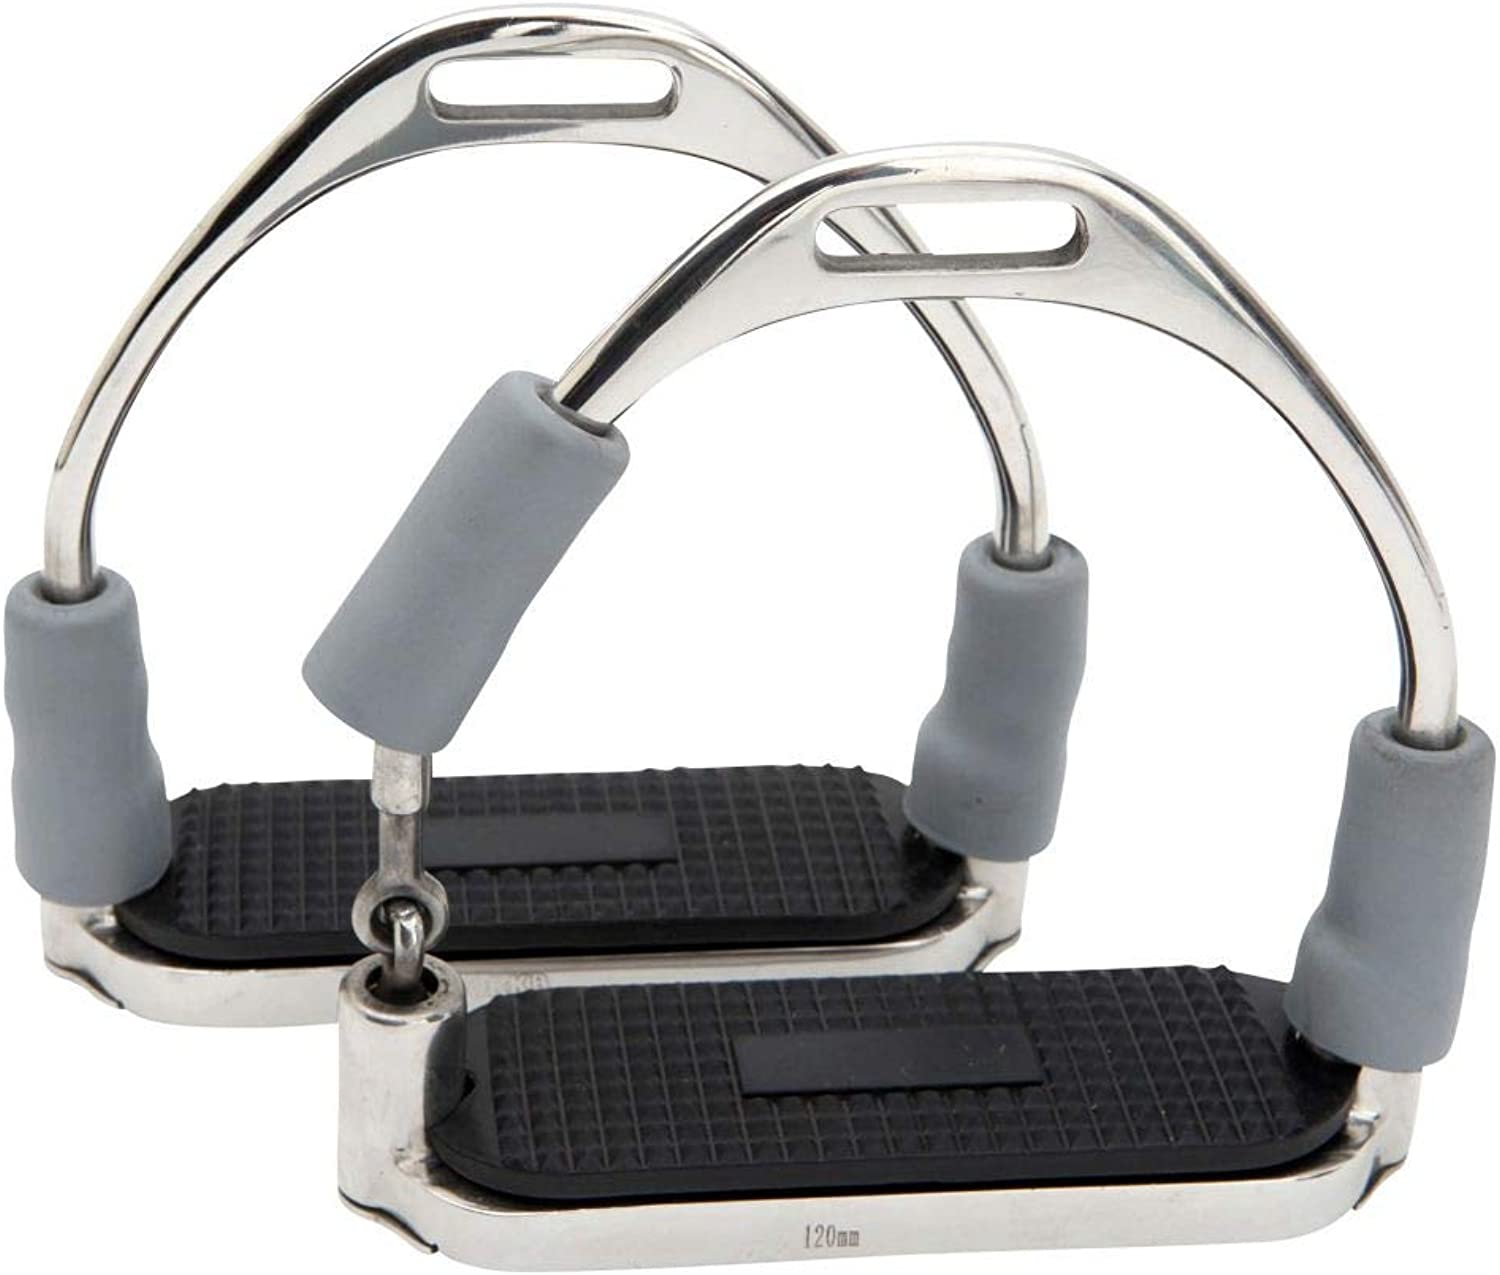 Horka Fillis Shock Absorbing Stirrups 12 Cm Pony Horse Stable Riding Accessories